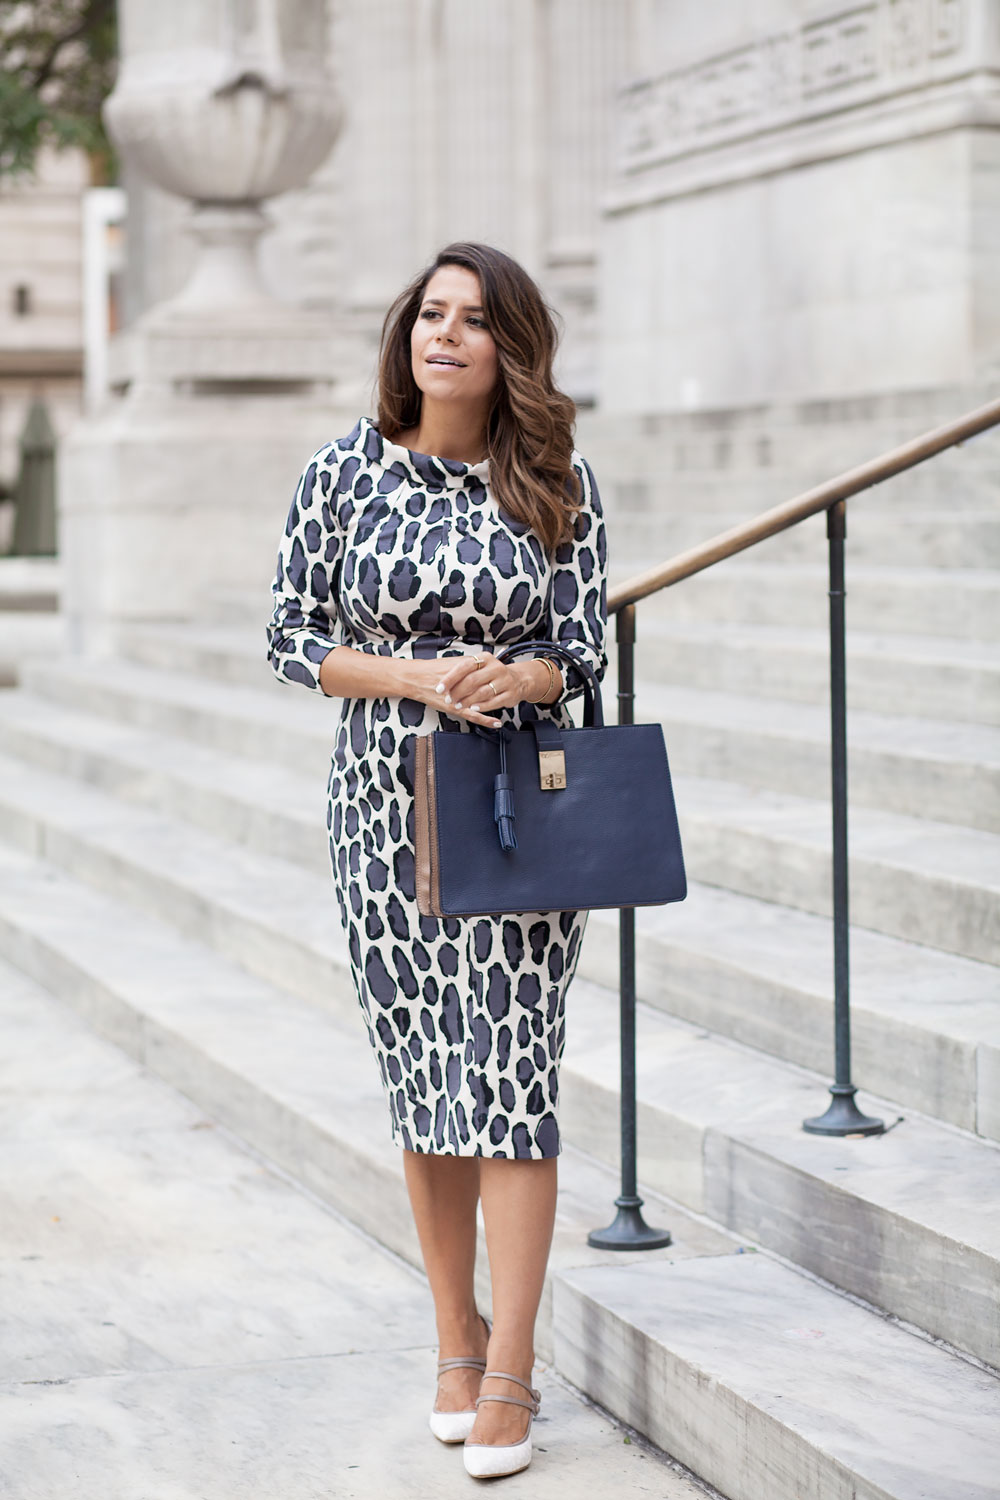 boden-leopard-dress-bodycon-dress-handbag-colorblock-calf-hair-heels-corporate-catwalk-nyfw-what-to-wear-to-work-fashion-blogger-nyc-new-york-city-blogger-6